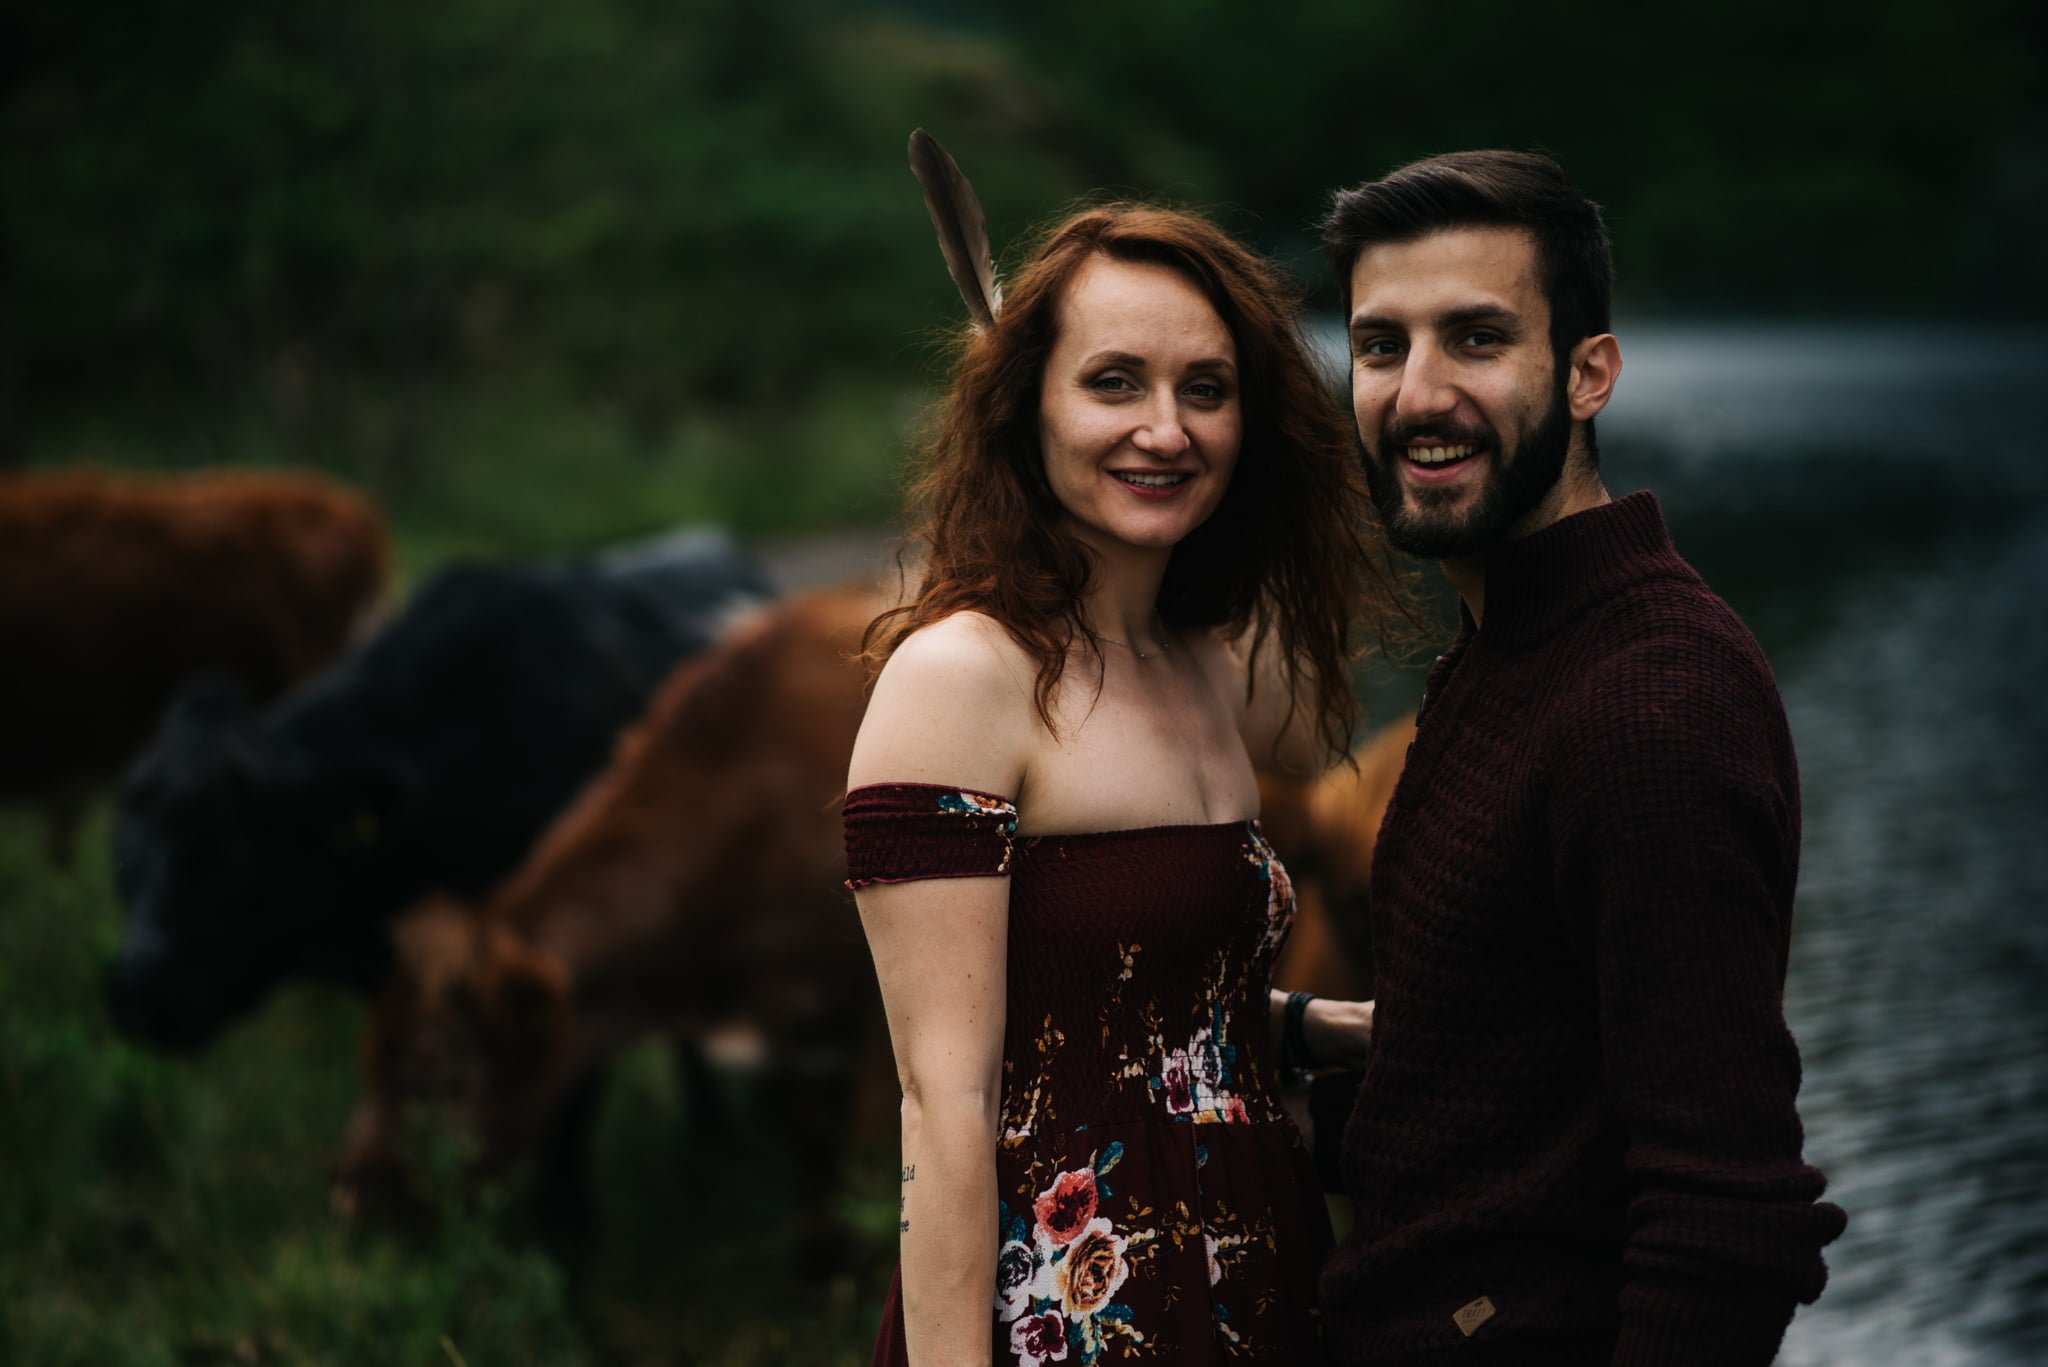 couple smiling with cows in background